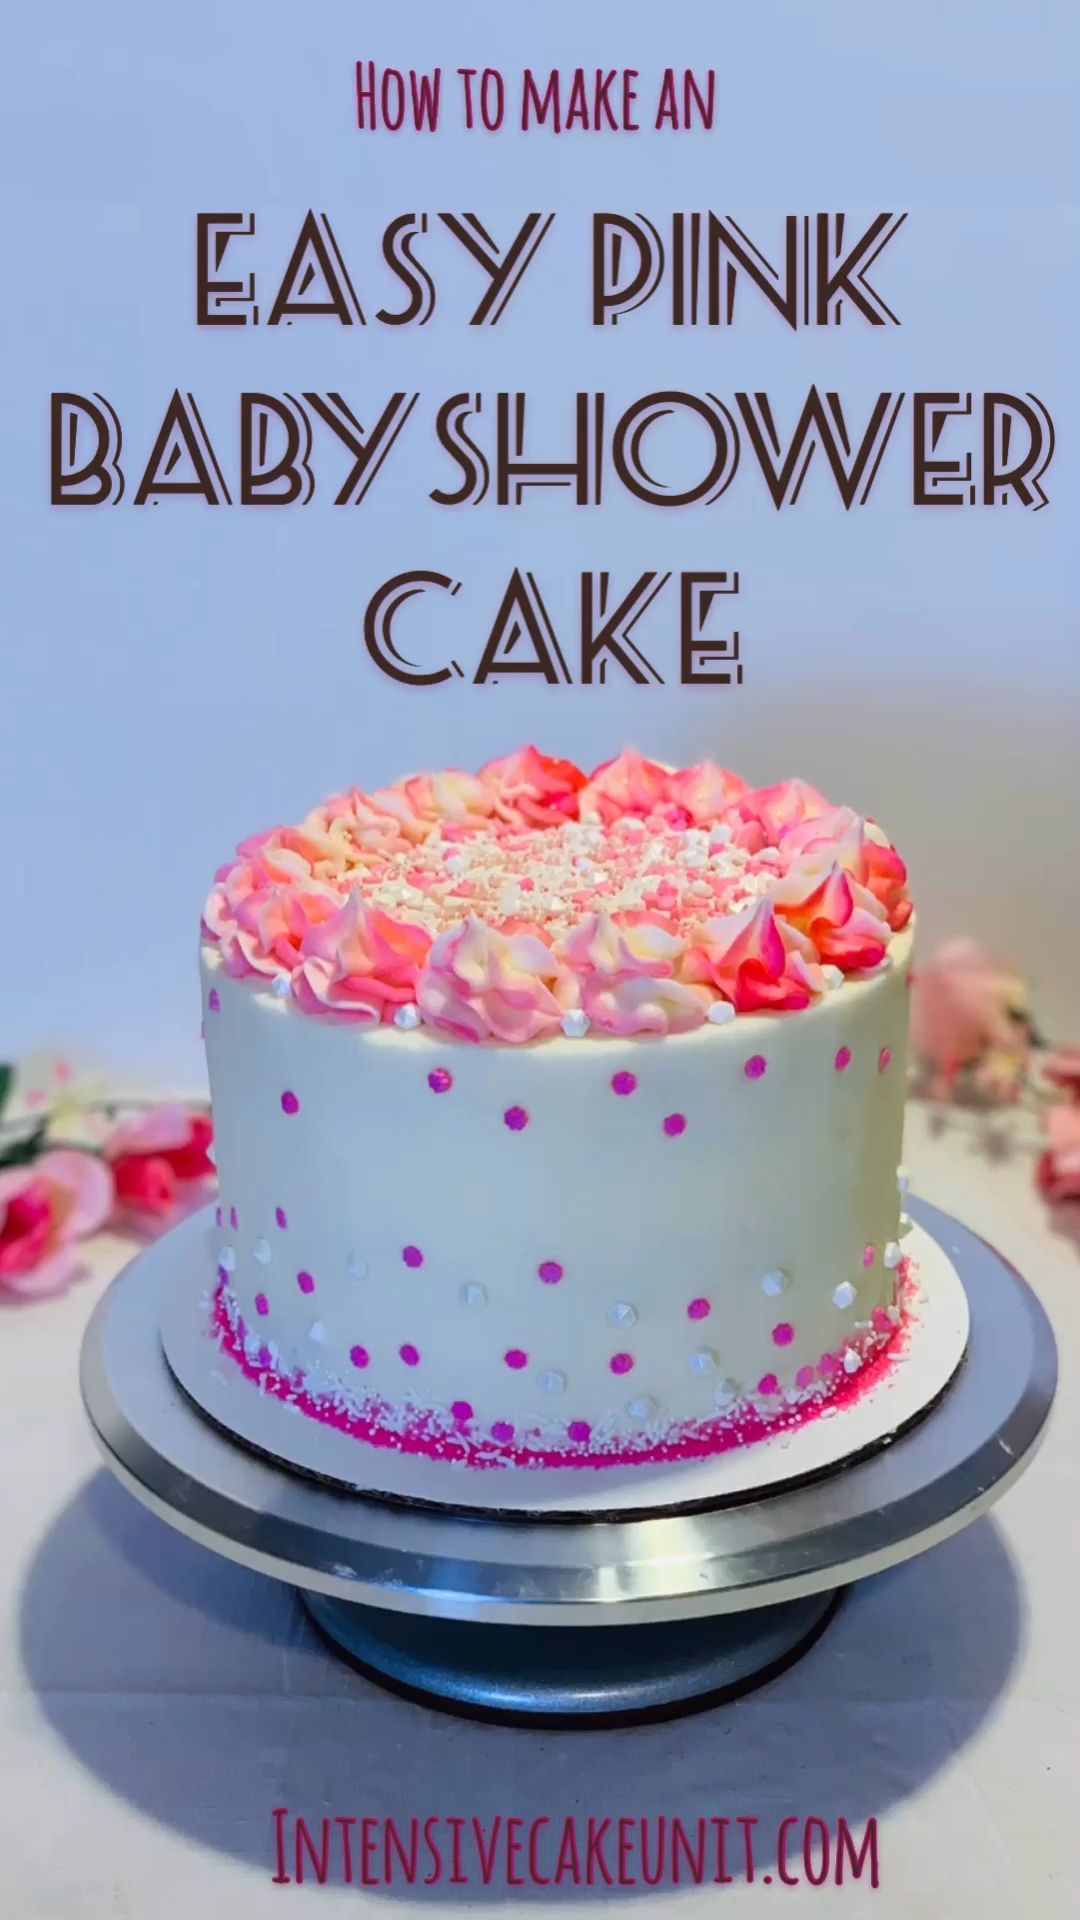 Easy Pink Baby Shower Cake -   15 cake Pink raspberry mousse ideas